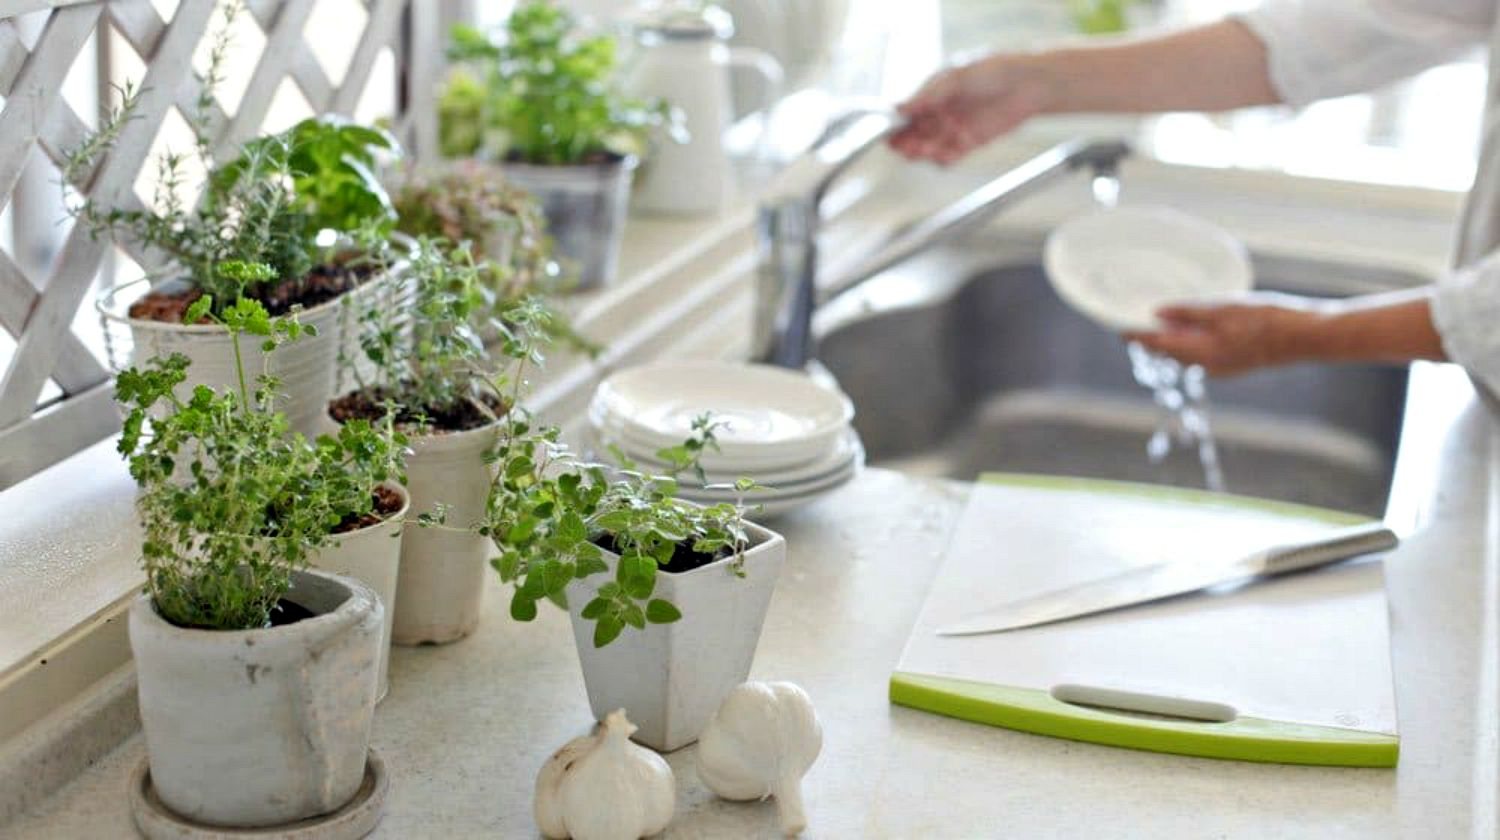 Feature | Herbs plants inside the house | Incredible Medicinal Herbs For Your Indoor Garden